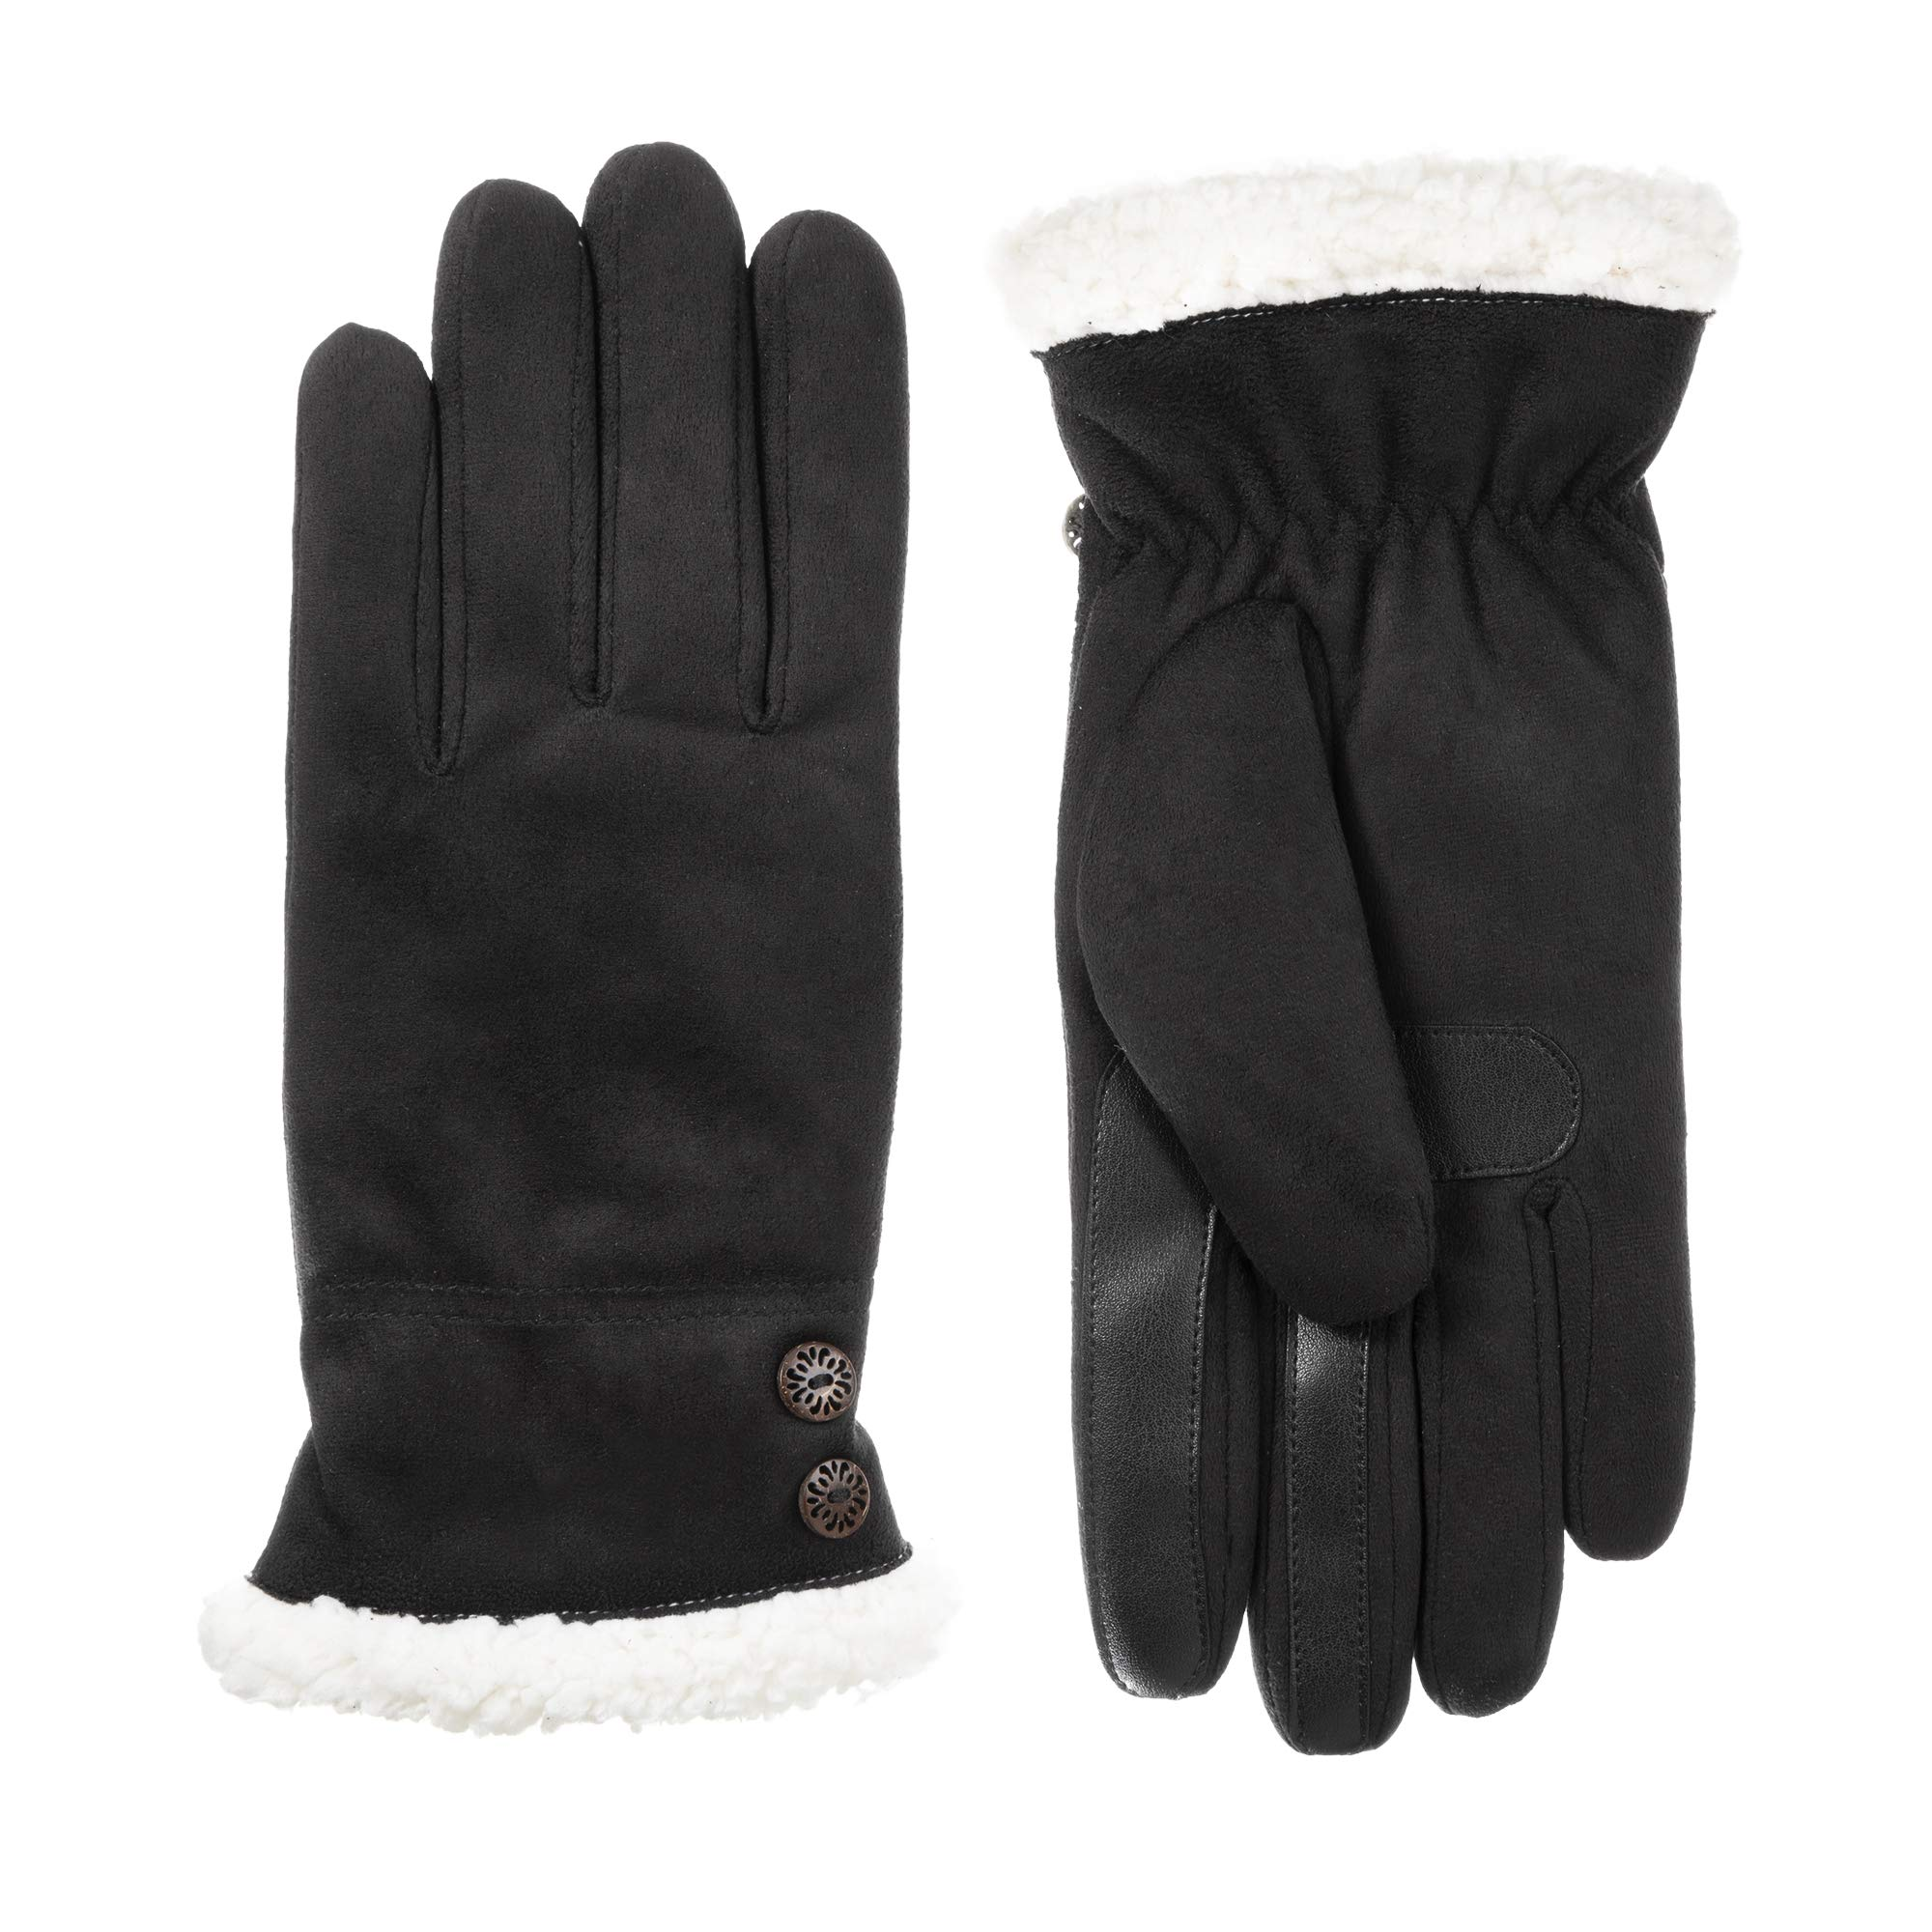 isotoner Microfiber Women's Gloves, Touchscreen Technology, Water Repellent, Black, L/XL by ISOTONER